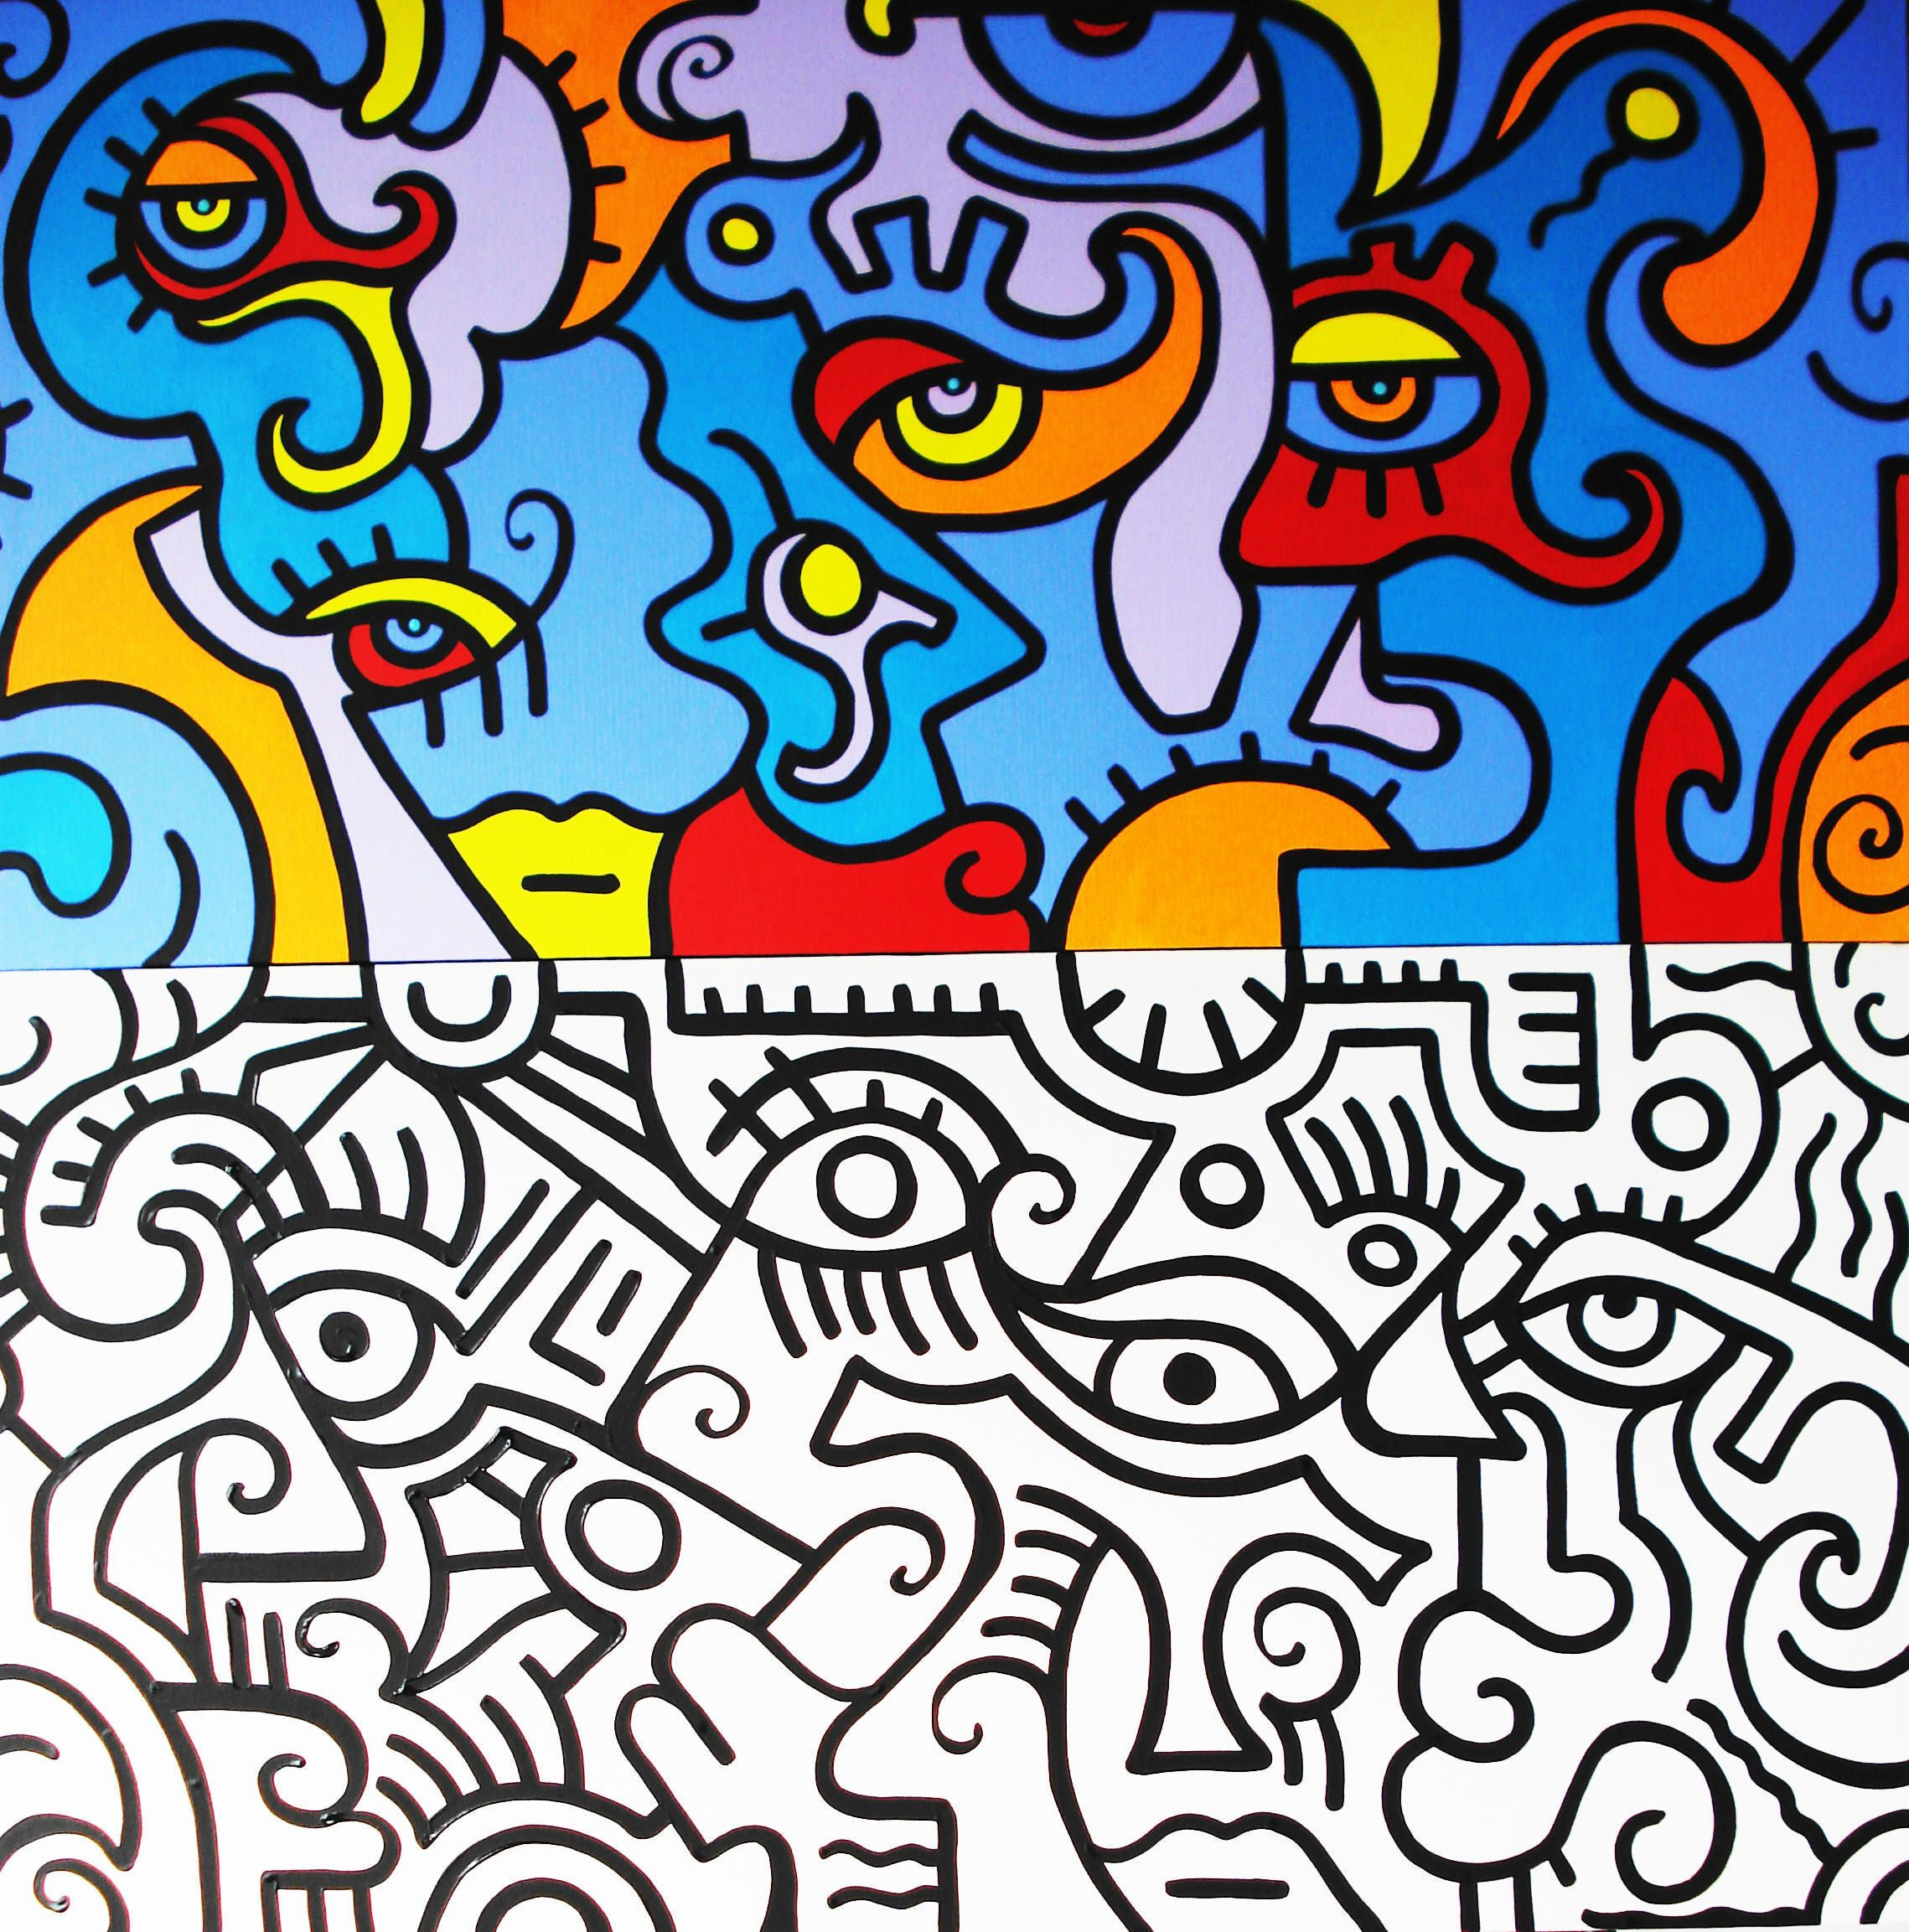 Beau Dessin à Colorier Keith Haring